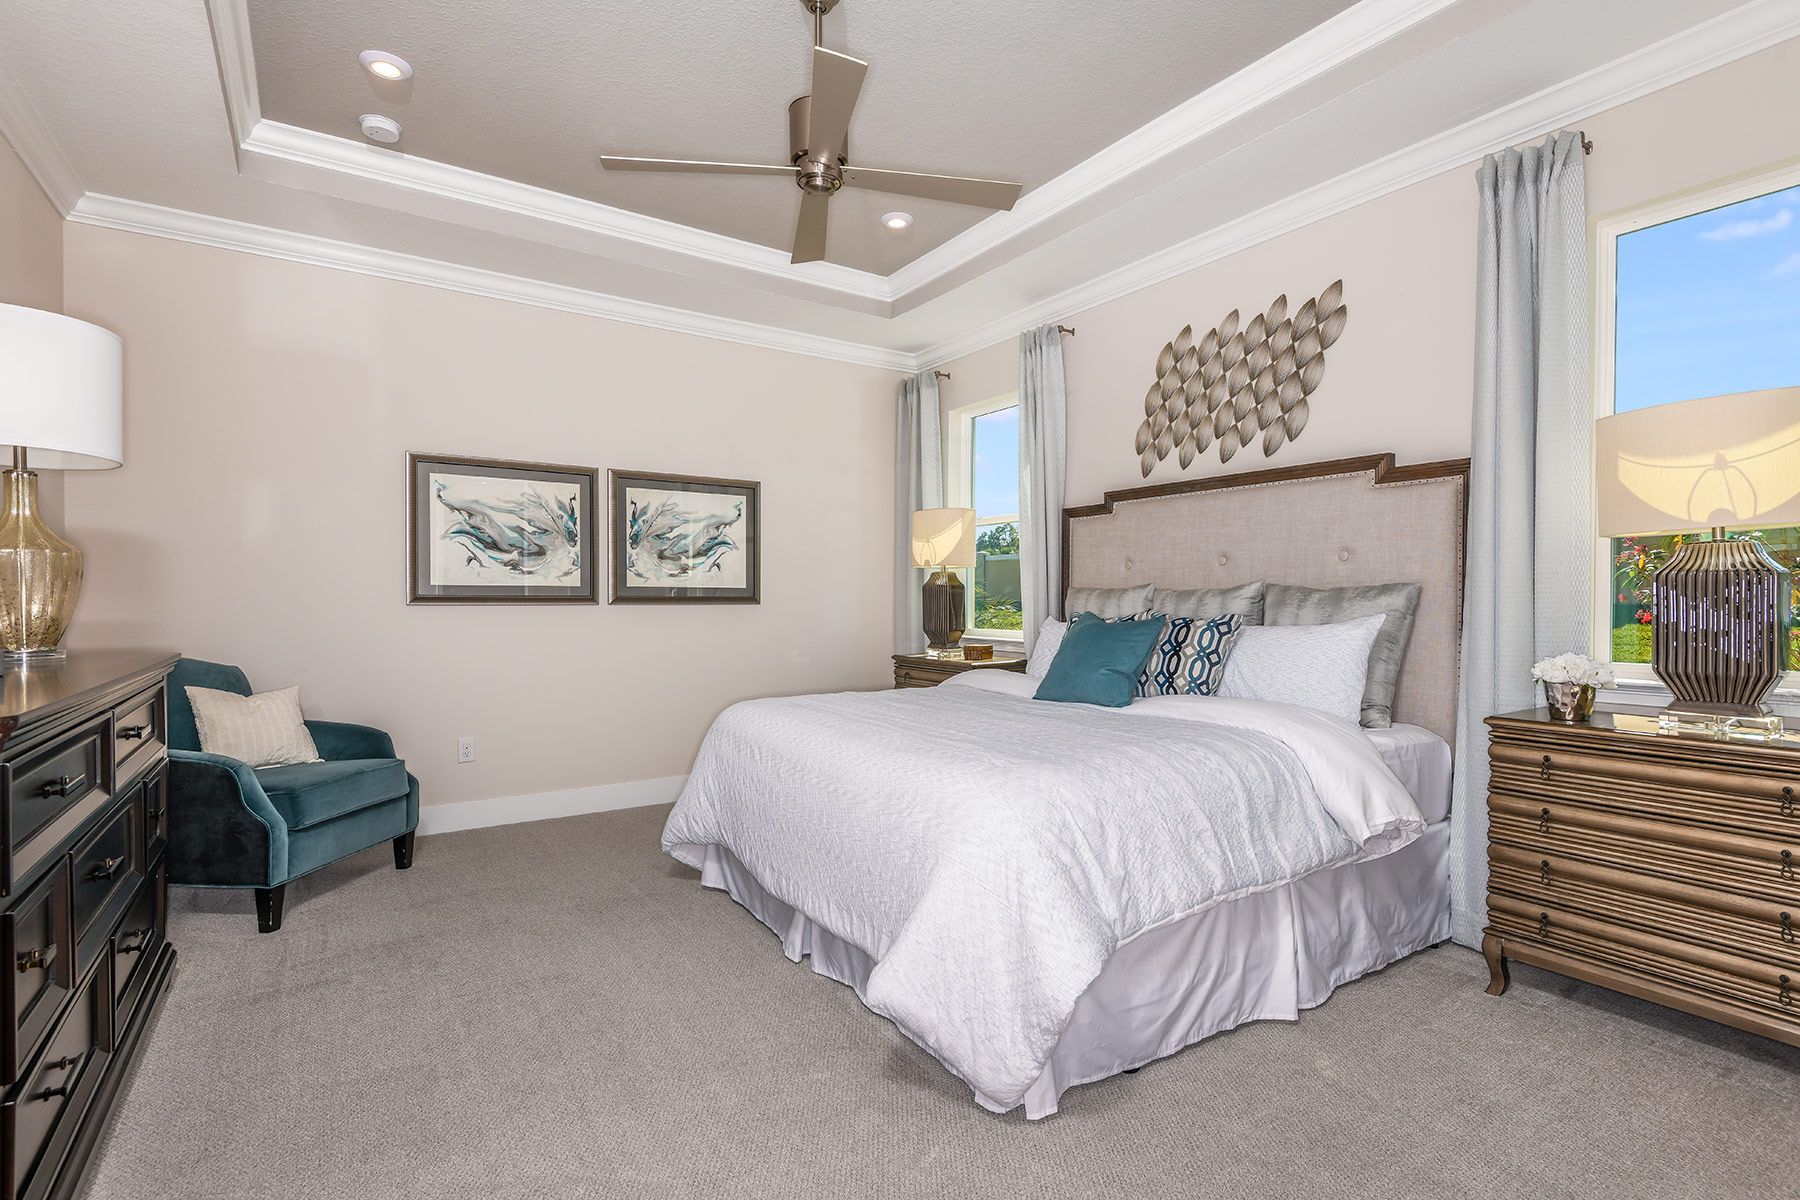 Dominica II Plan Bedroom at Wellen Park - Renaissance in Venice Florida by Mattamy Homes